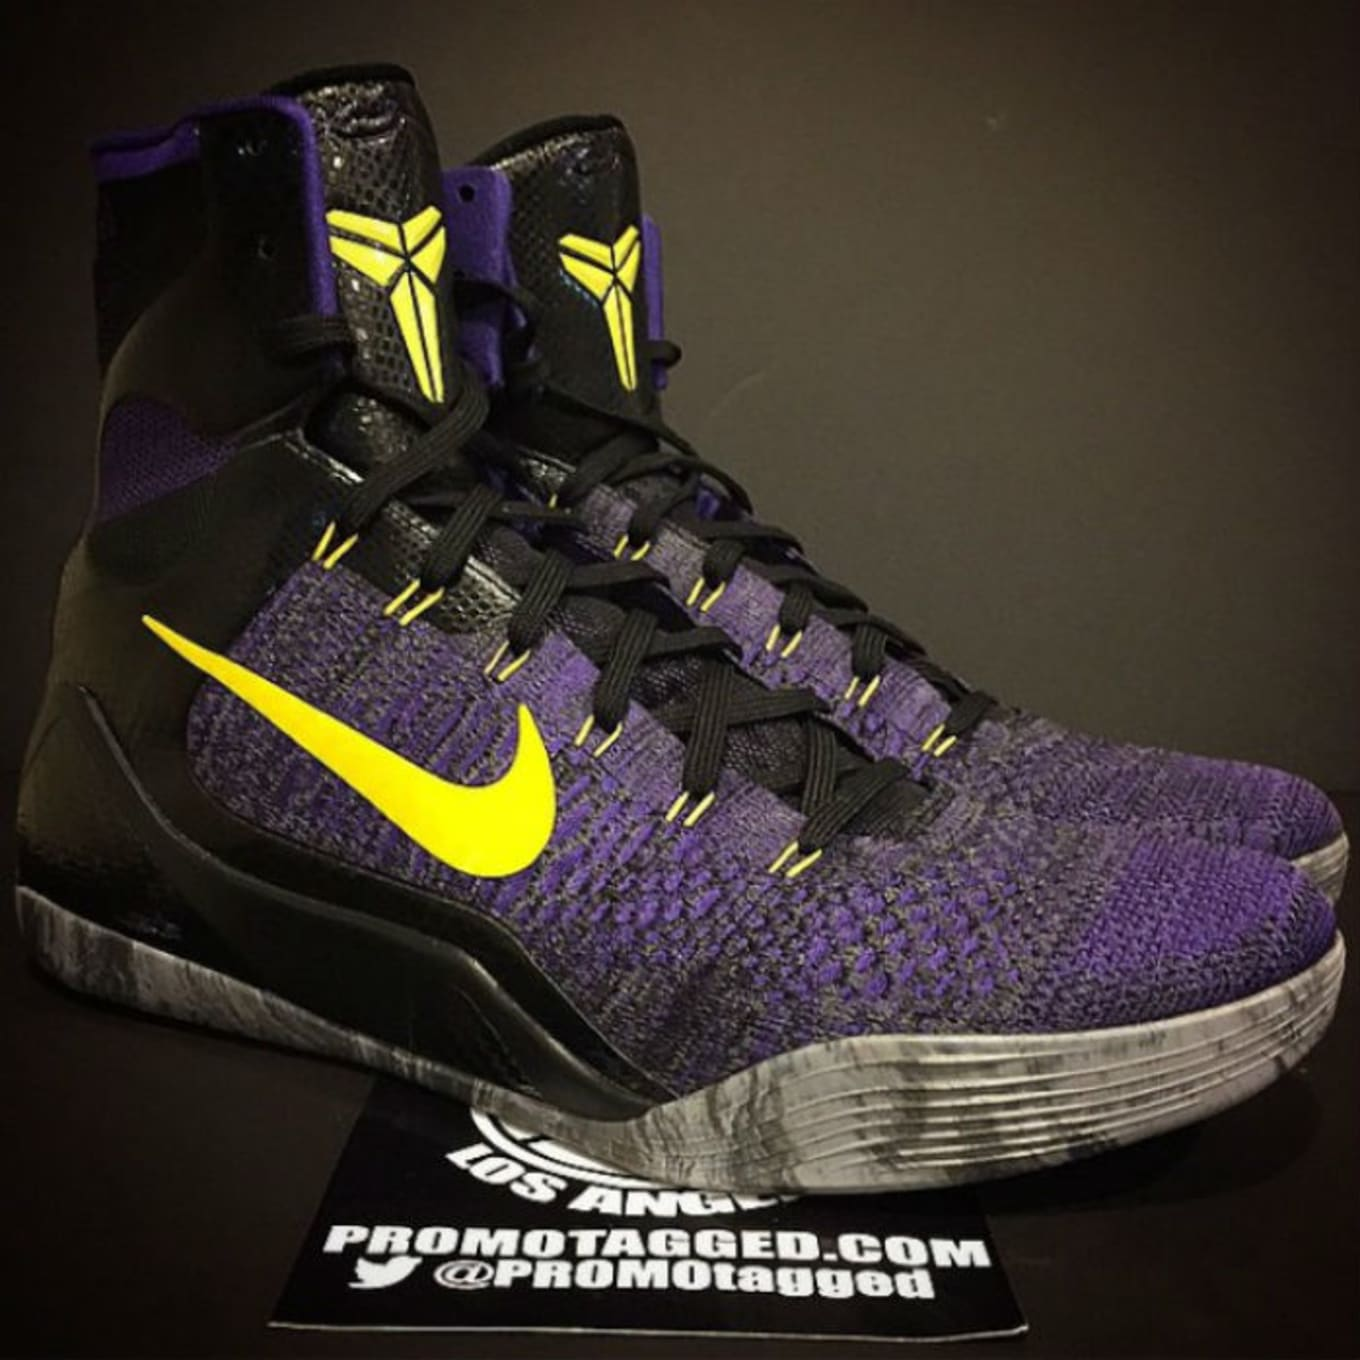 new style 9c3be ef5bc Nike Kobe 9 Elite Purple Black-Yellow Sample (2014)